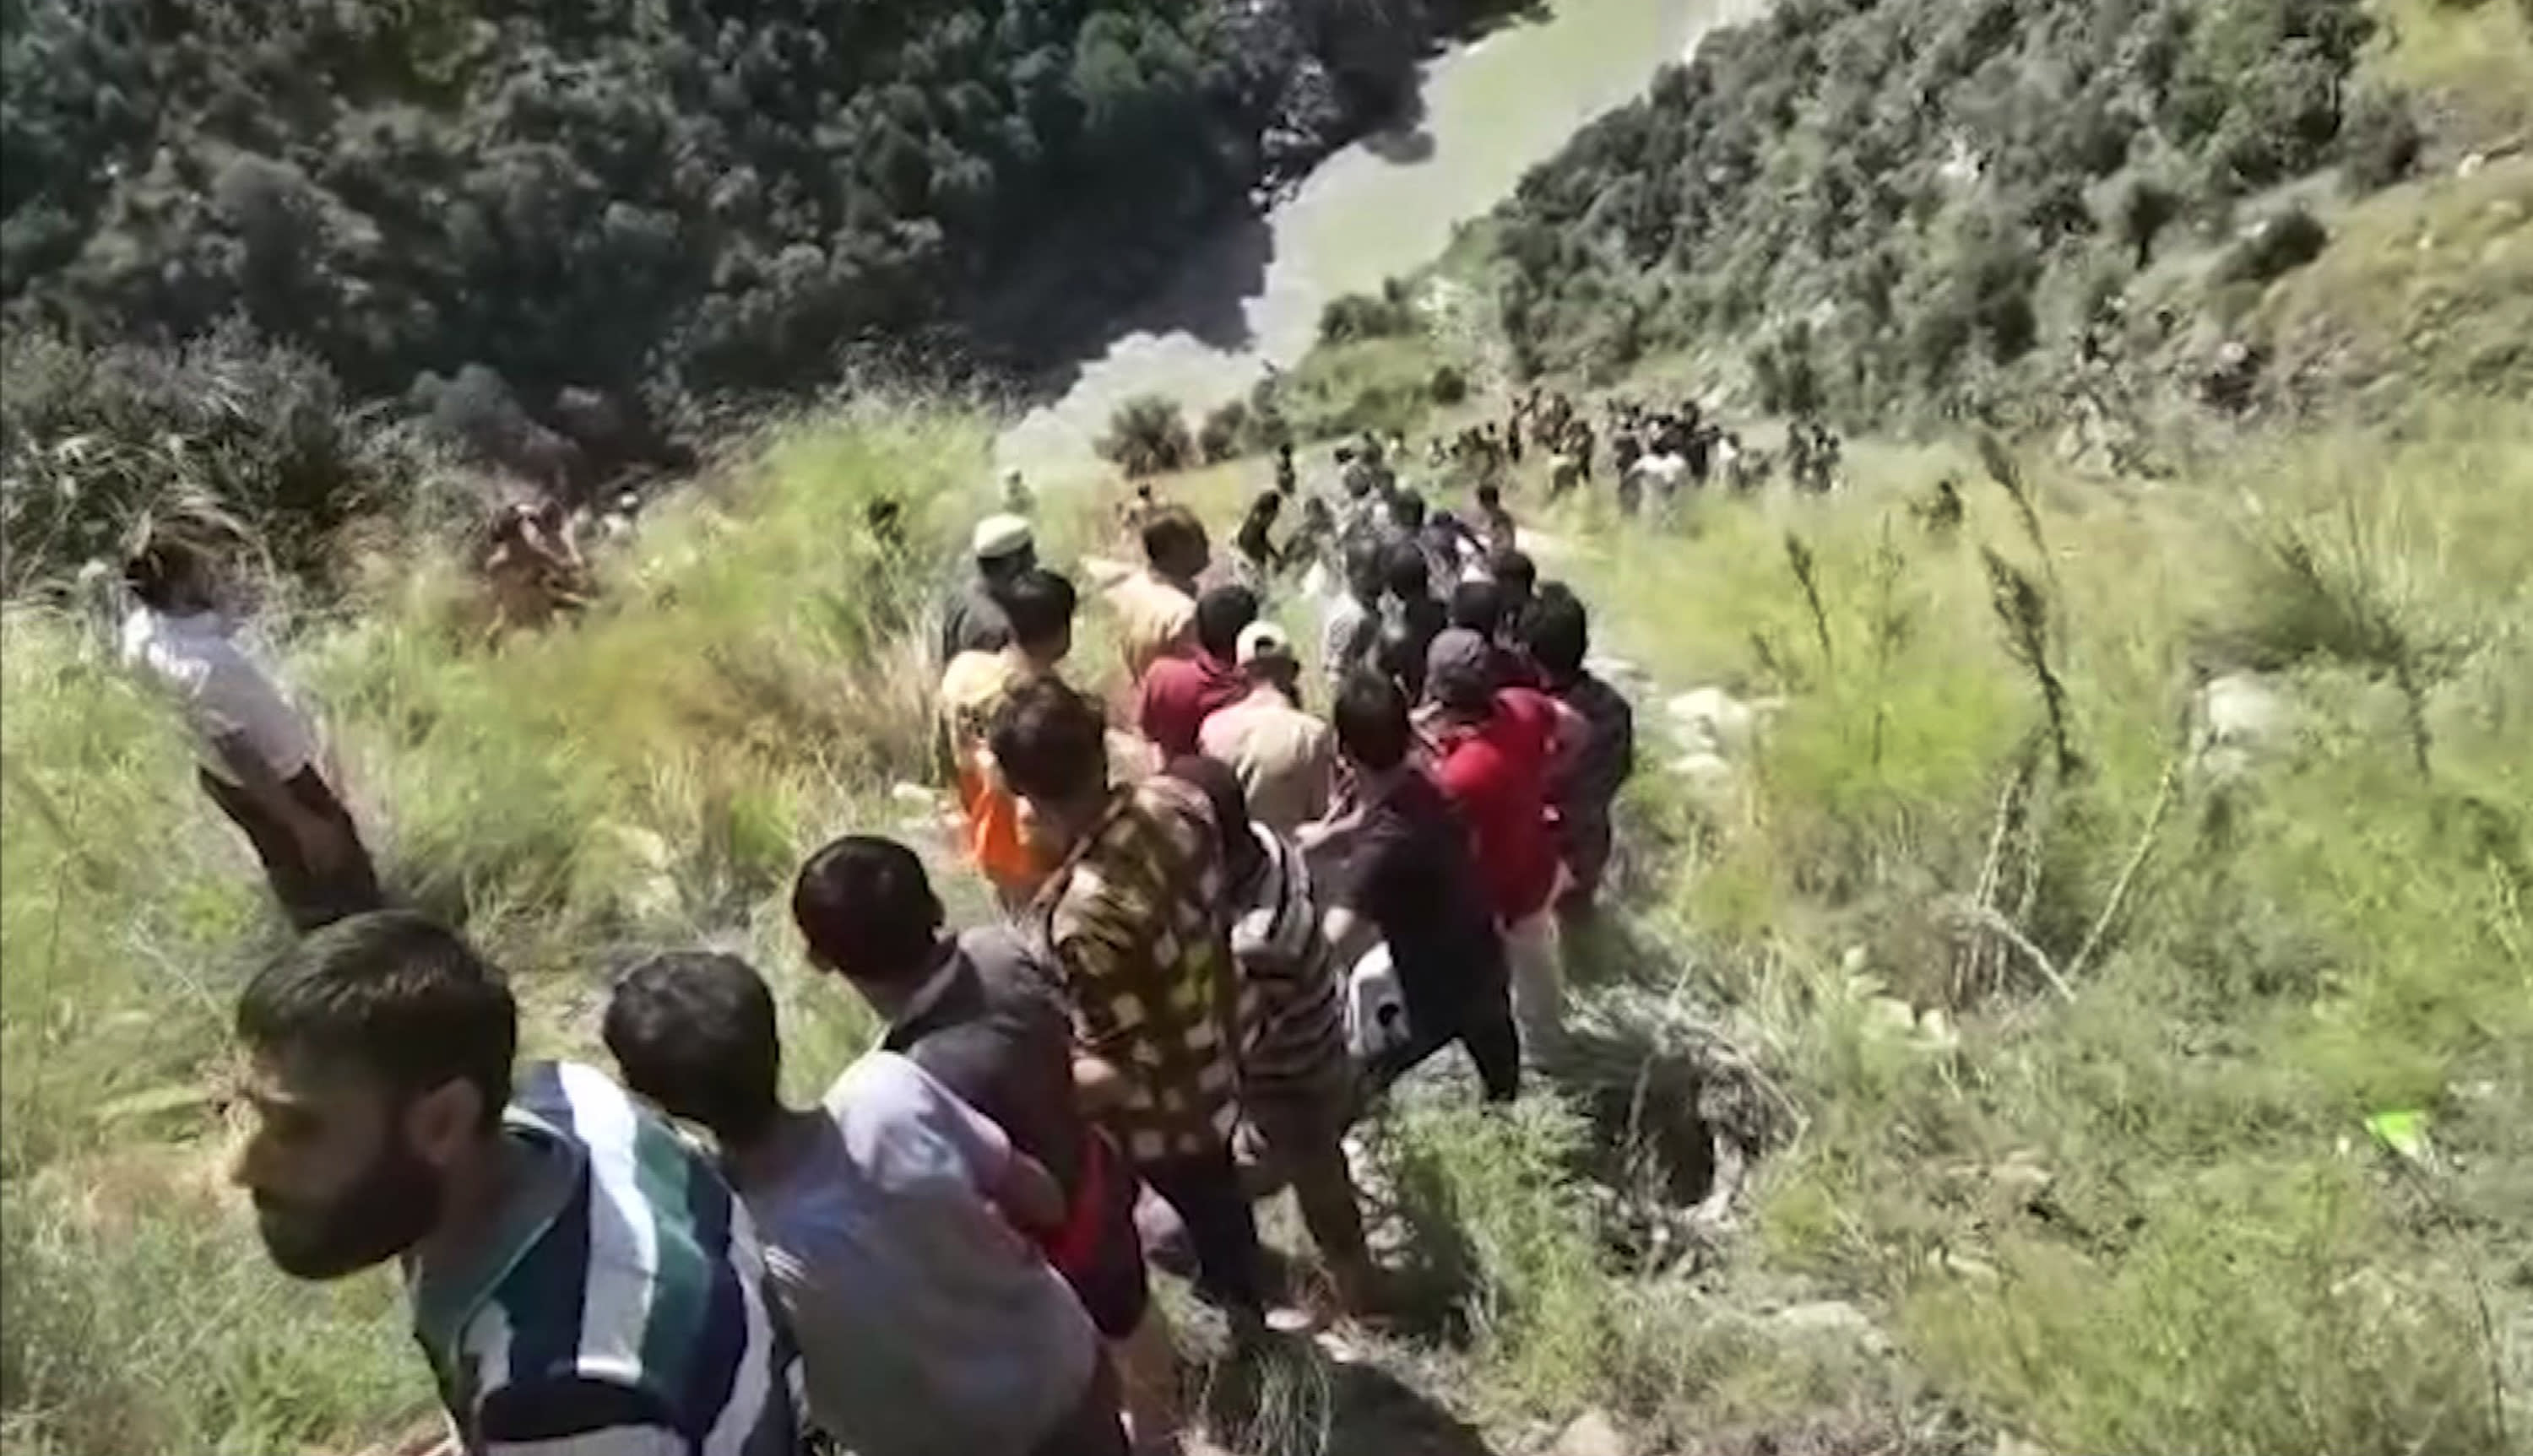 In this grab made from video provided by KK Productions, rescuers try to reach a bus that fell into a gorge in Kishtwar, about 217 kilometers (135 miles) southeast of Srinagar, Indian-controlled portion of Kashmir, Friday, Sept. 14, 2018. The bus fell off a road into a deep gorge killing more than a dozen people. (KK Productions via AP)